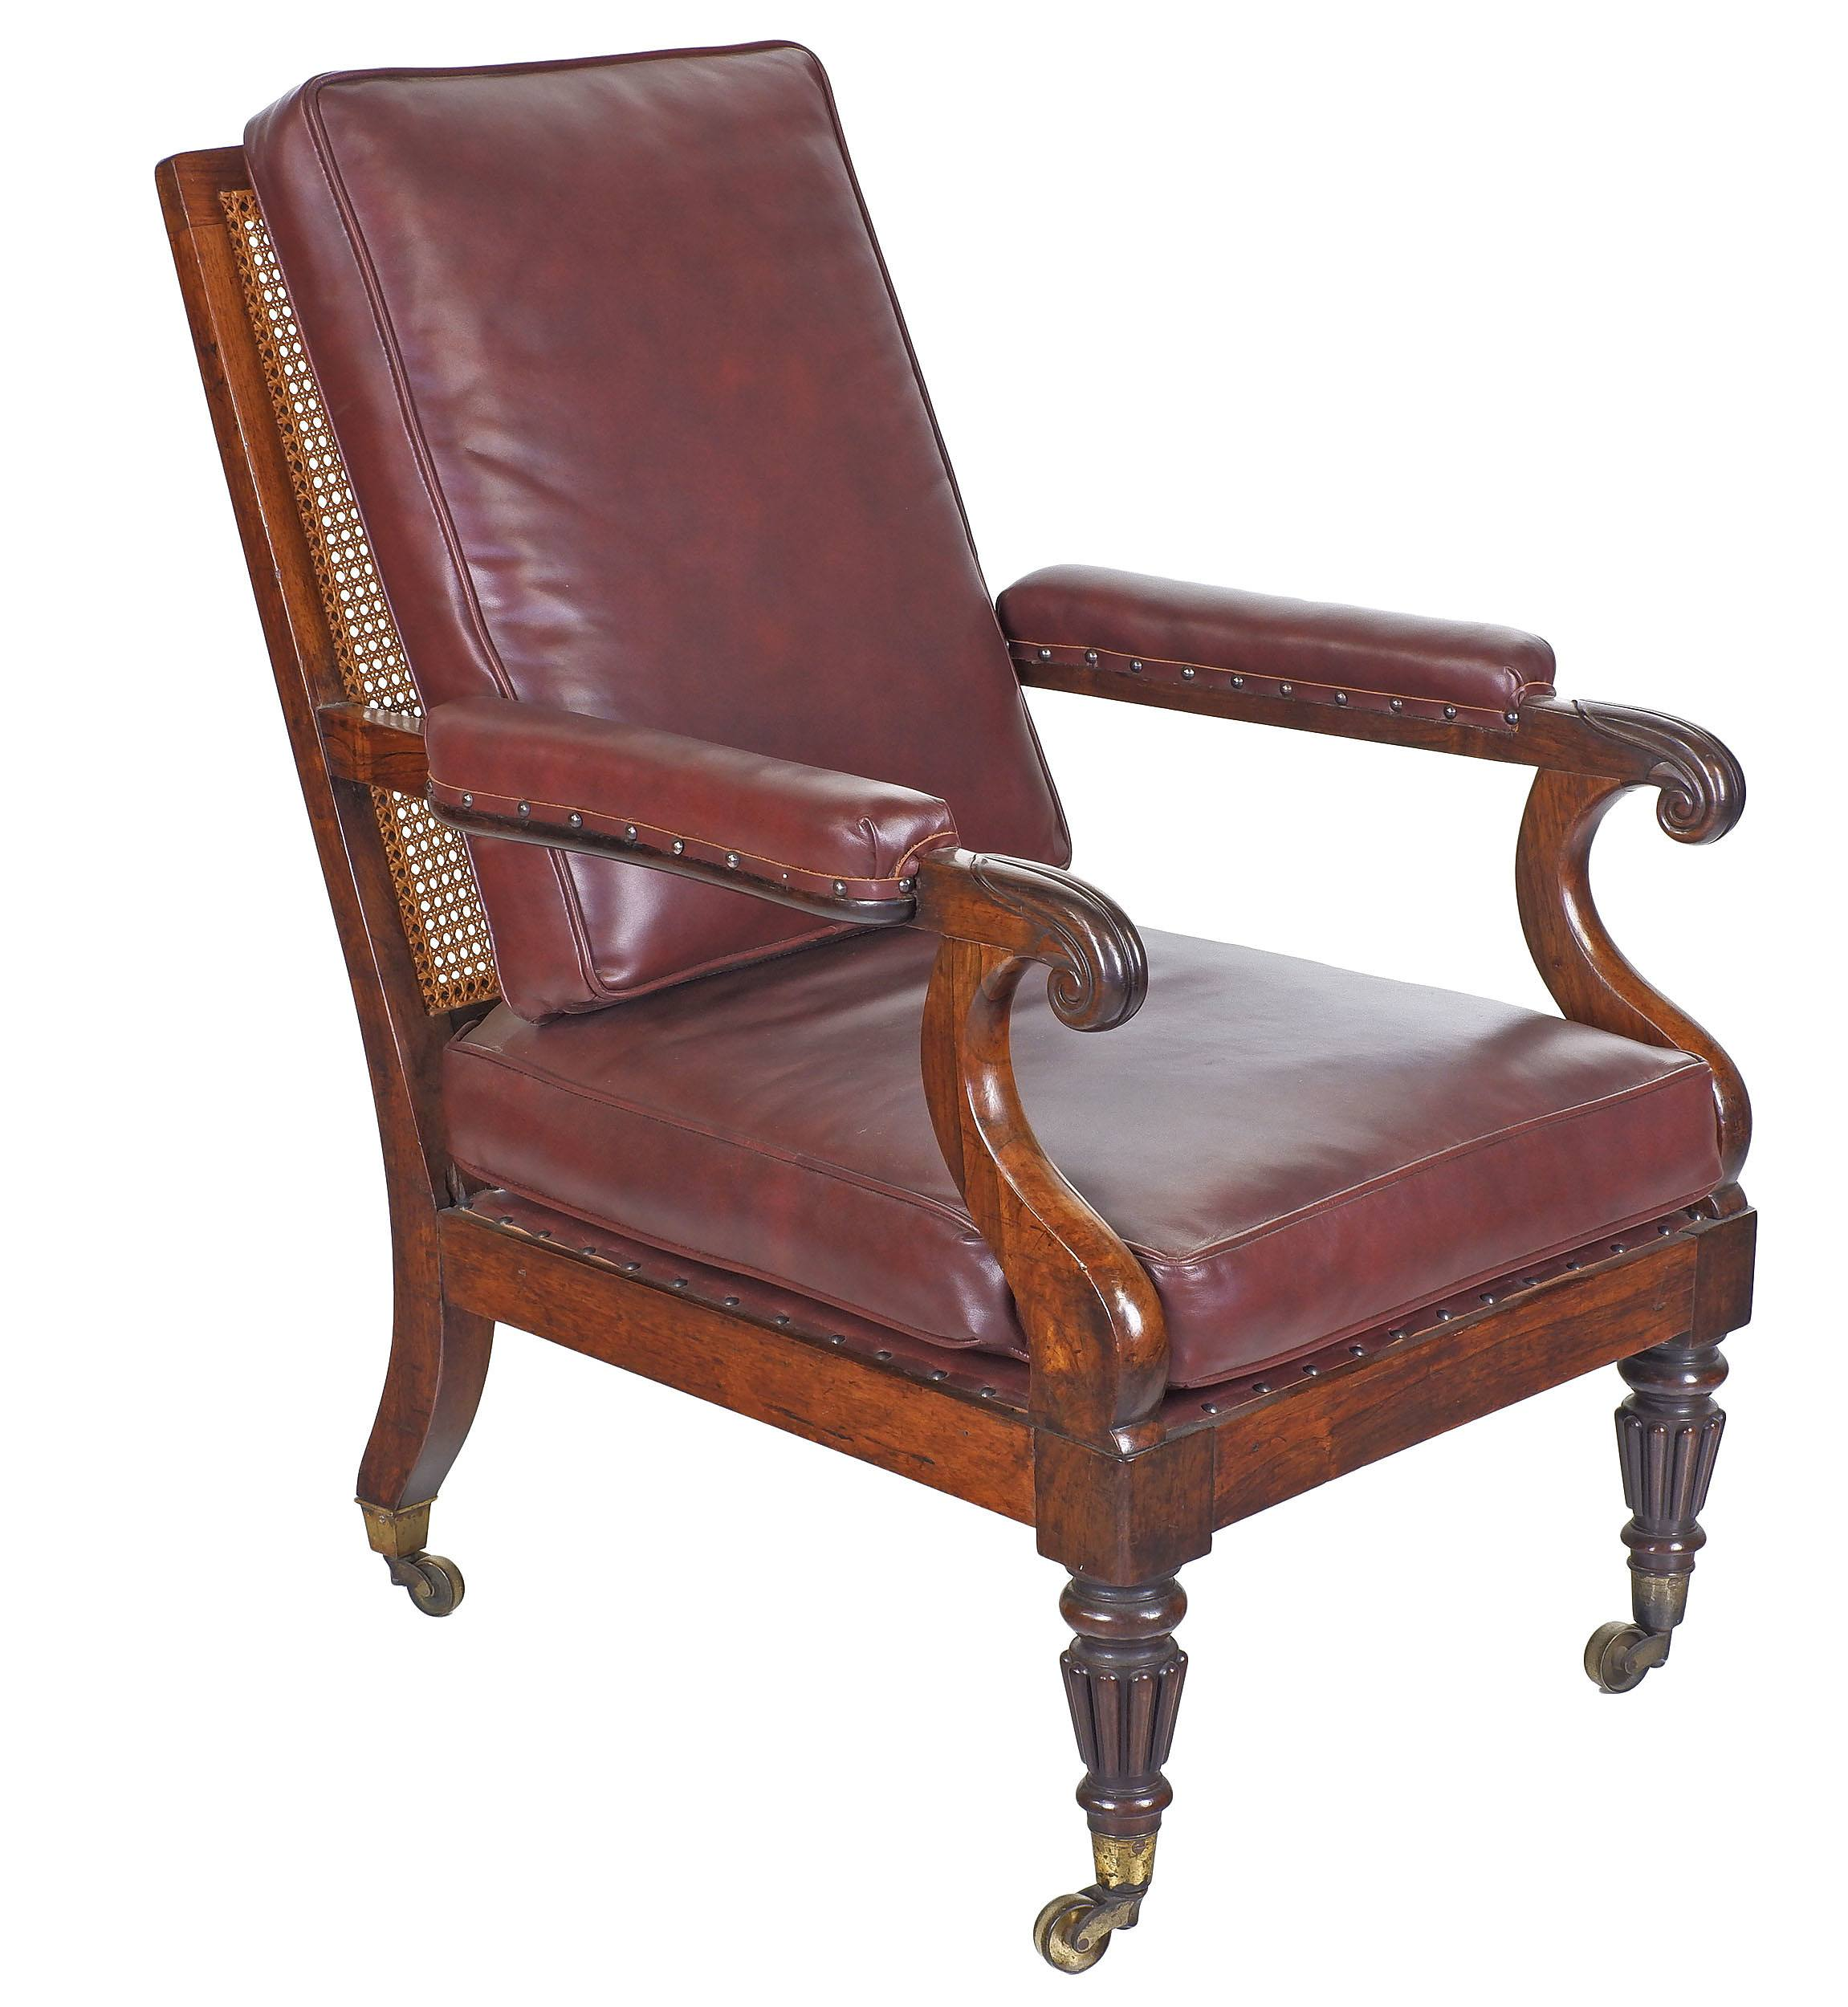 'Good William IV Brazilian Rosewood Bergere Library Chair with Caned Back and Loose Leather Upholstered Cushions Circa 1835'